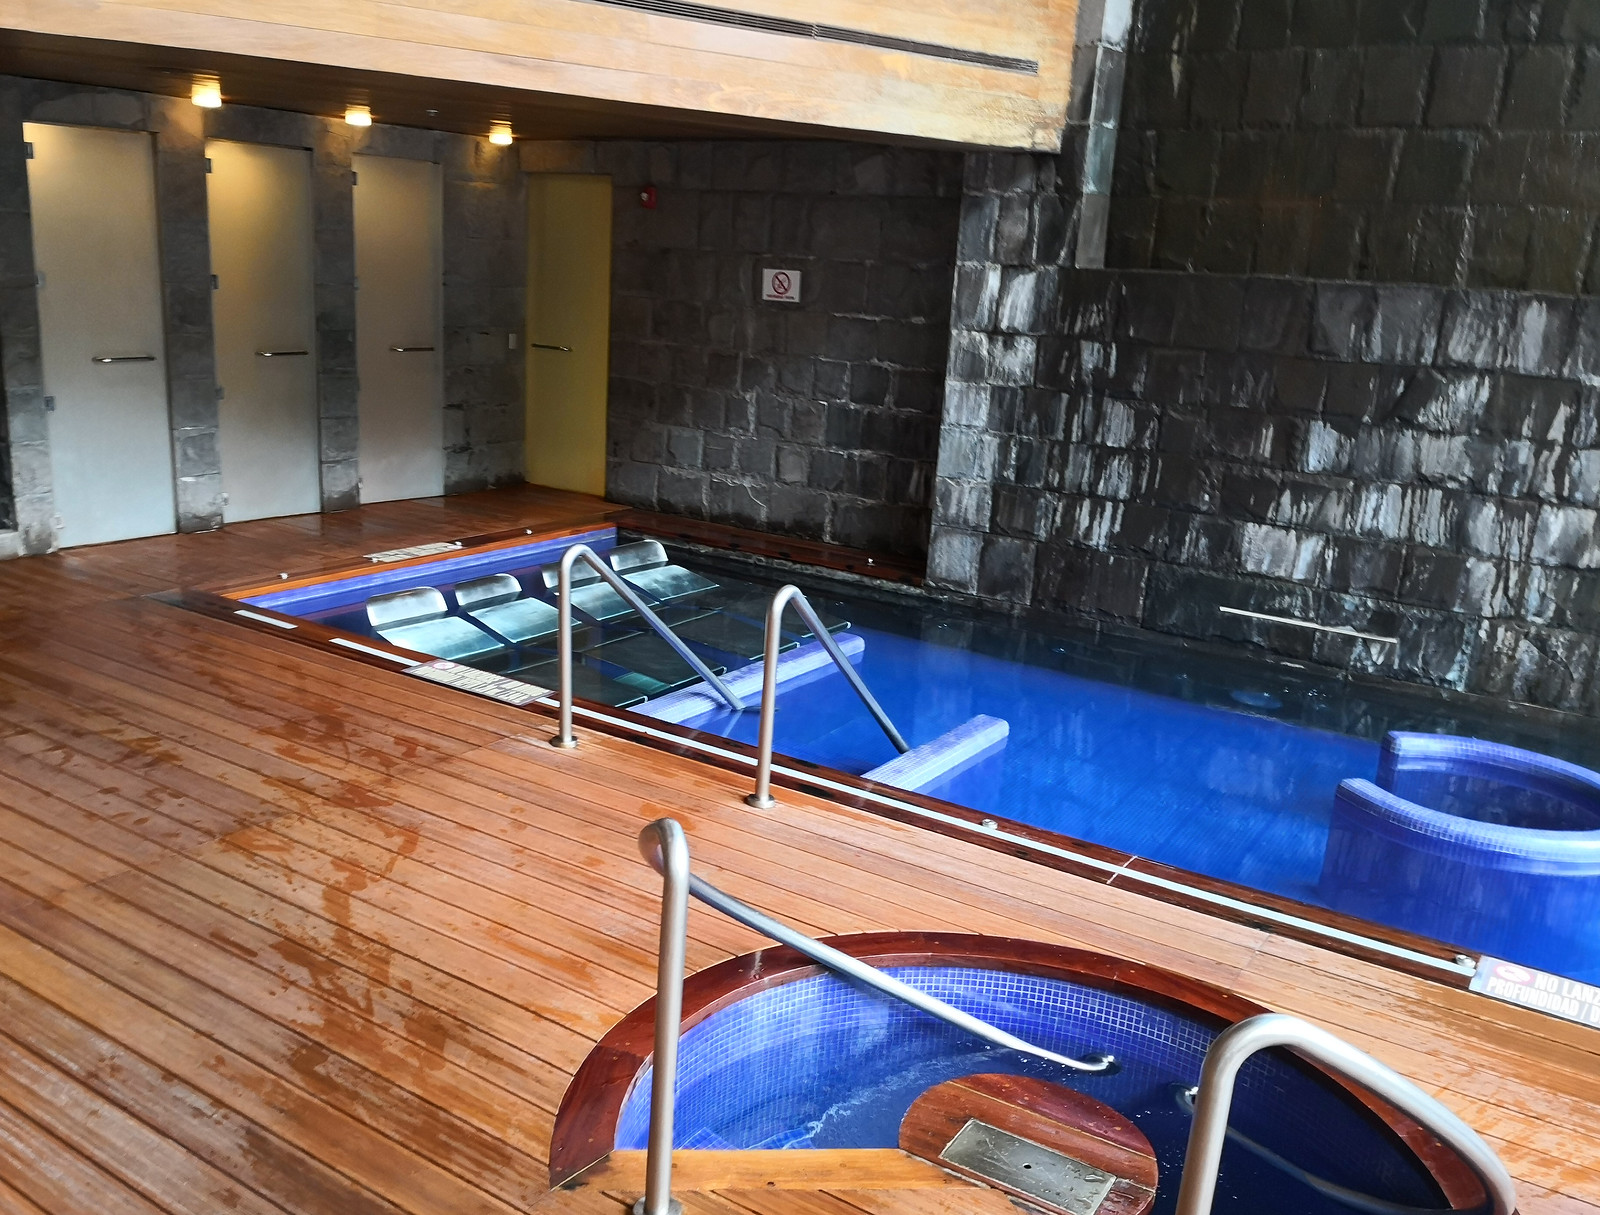 Hydrotherapy pool area